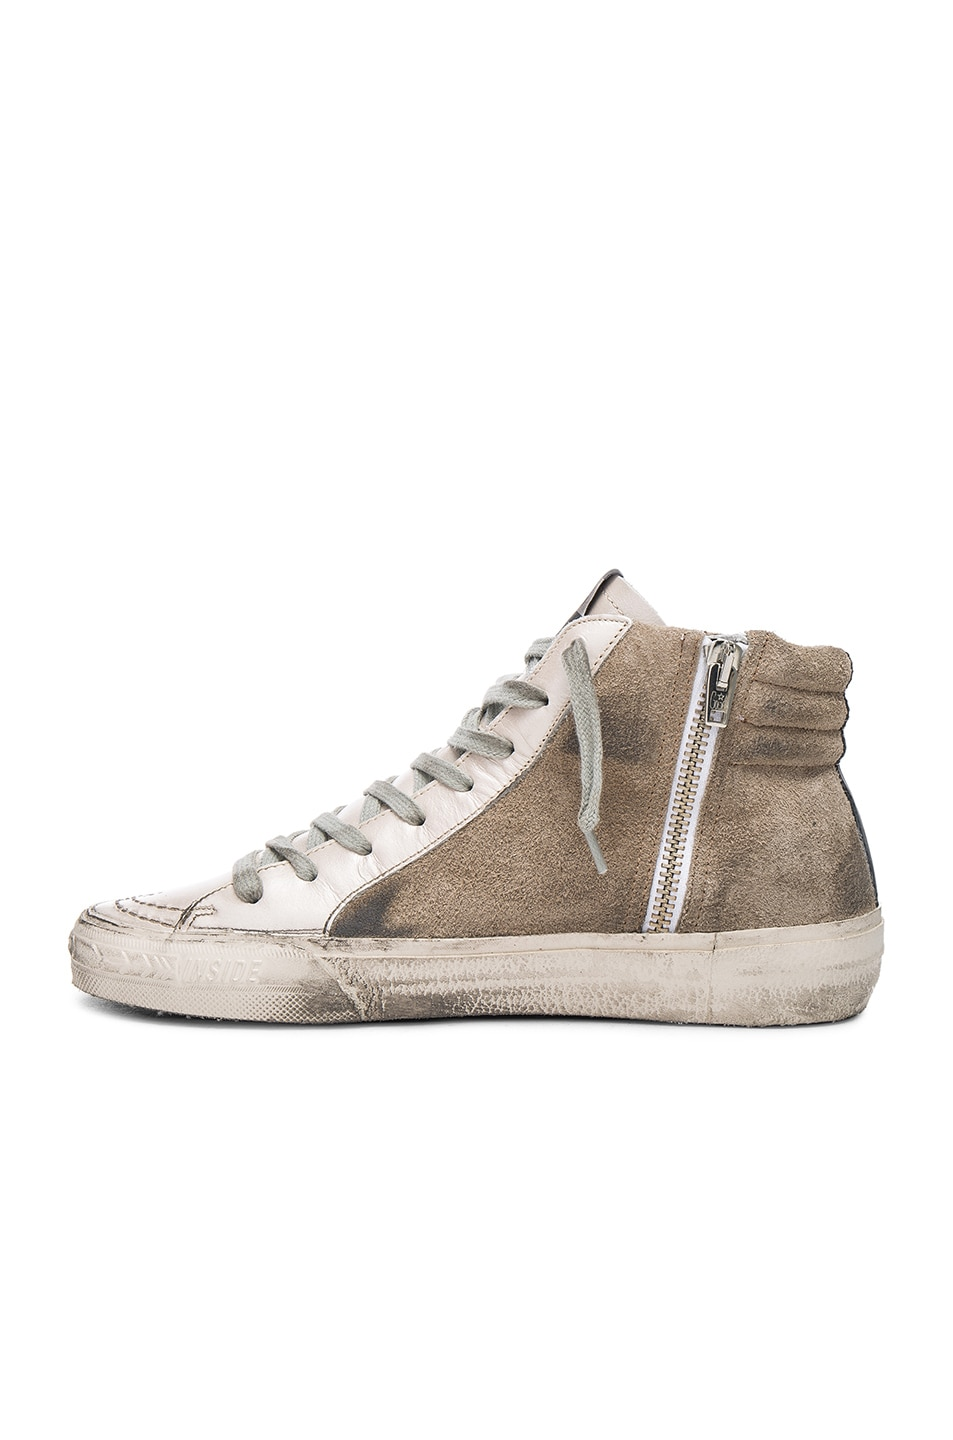 Image 5 of Golden Goose Leather Slide Sneakers in Beige & Silver